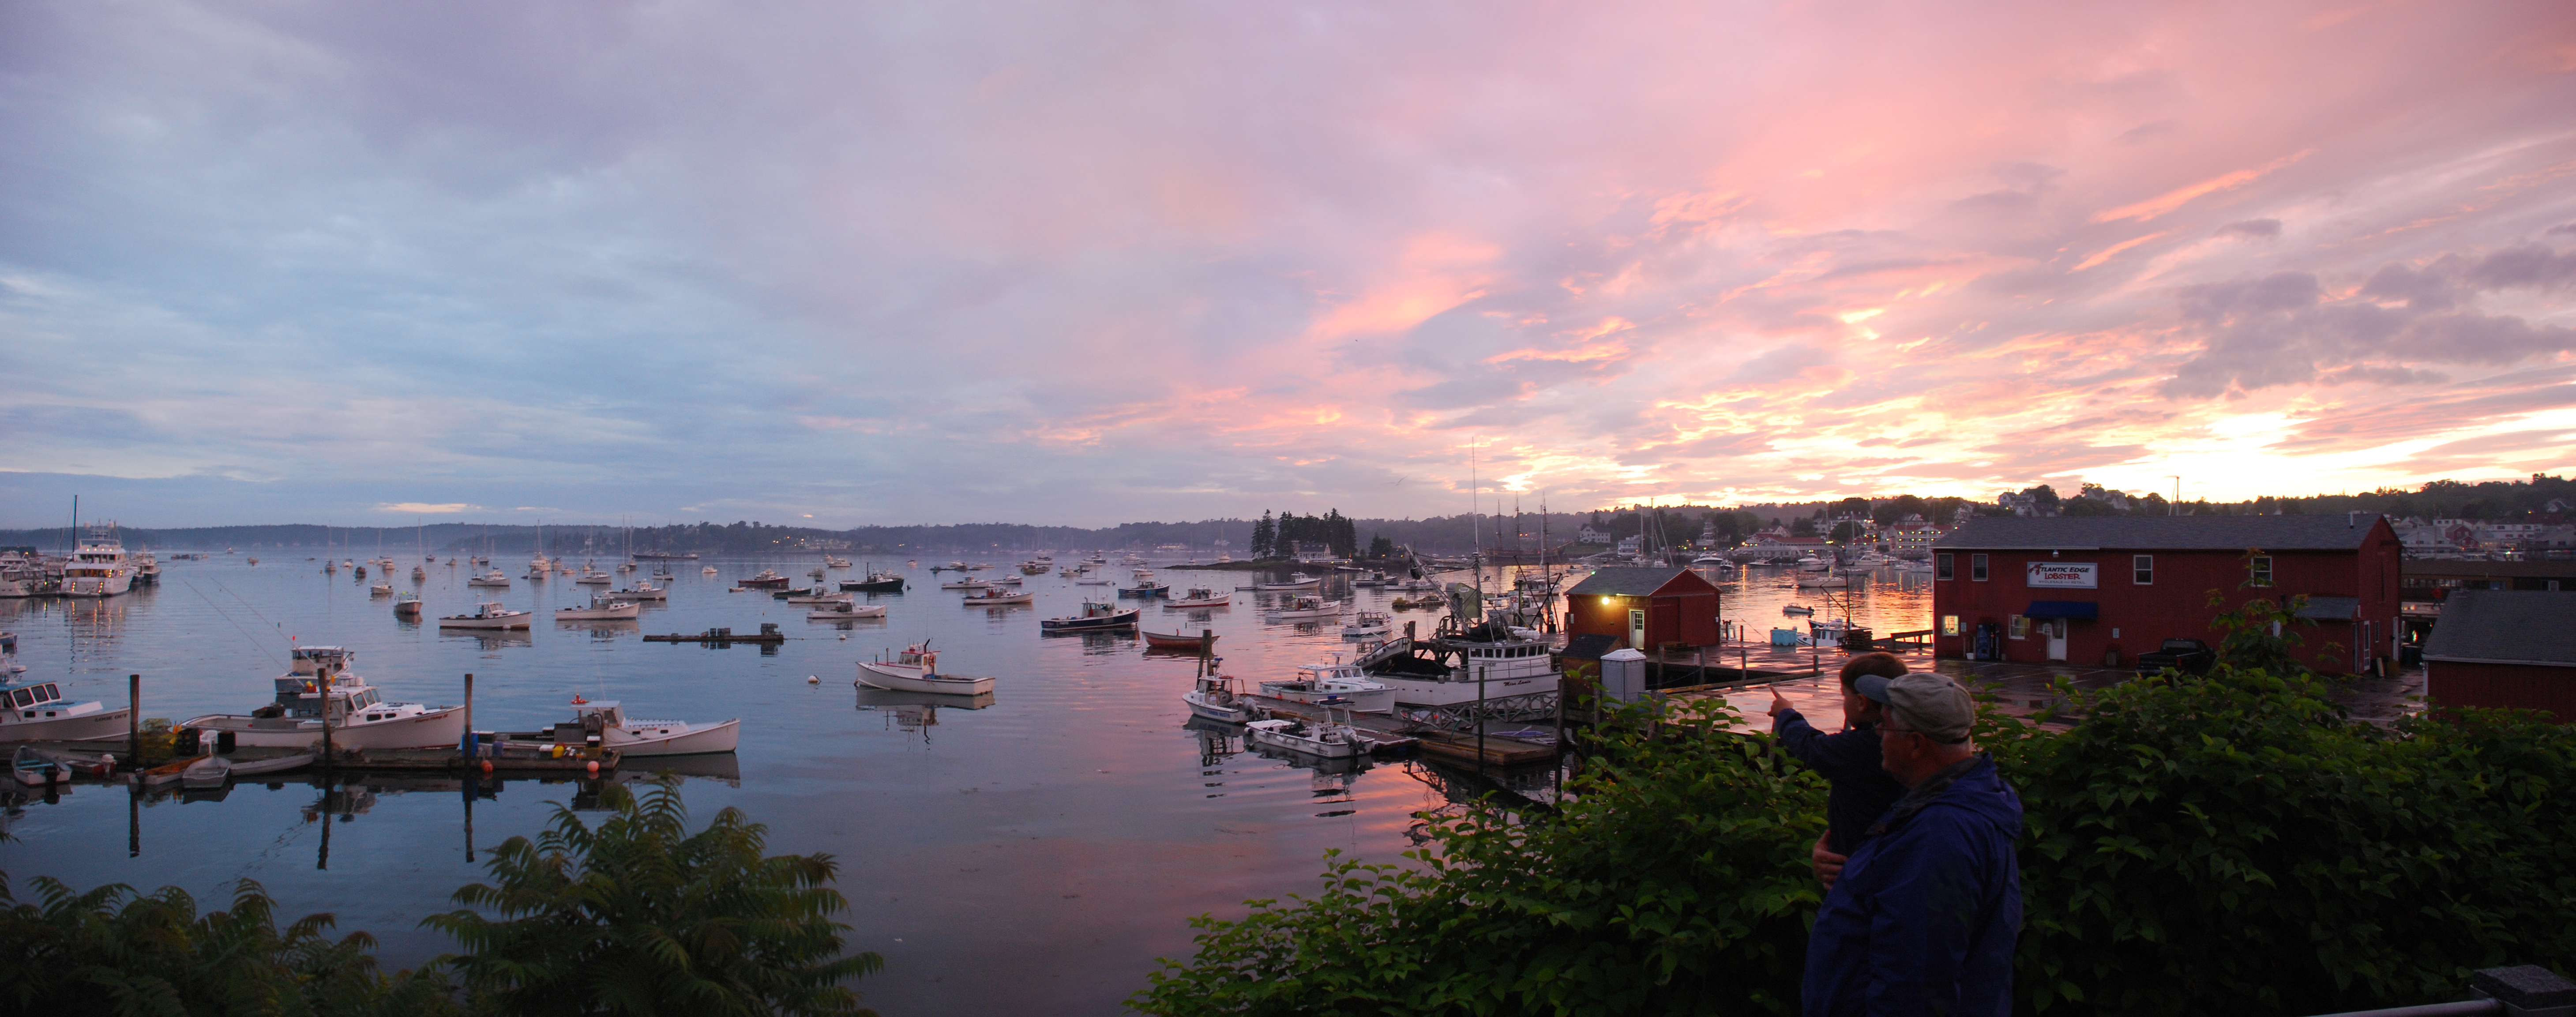 10 prettiest coastal towns in maine new england today for Small east coast beach towns